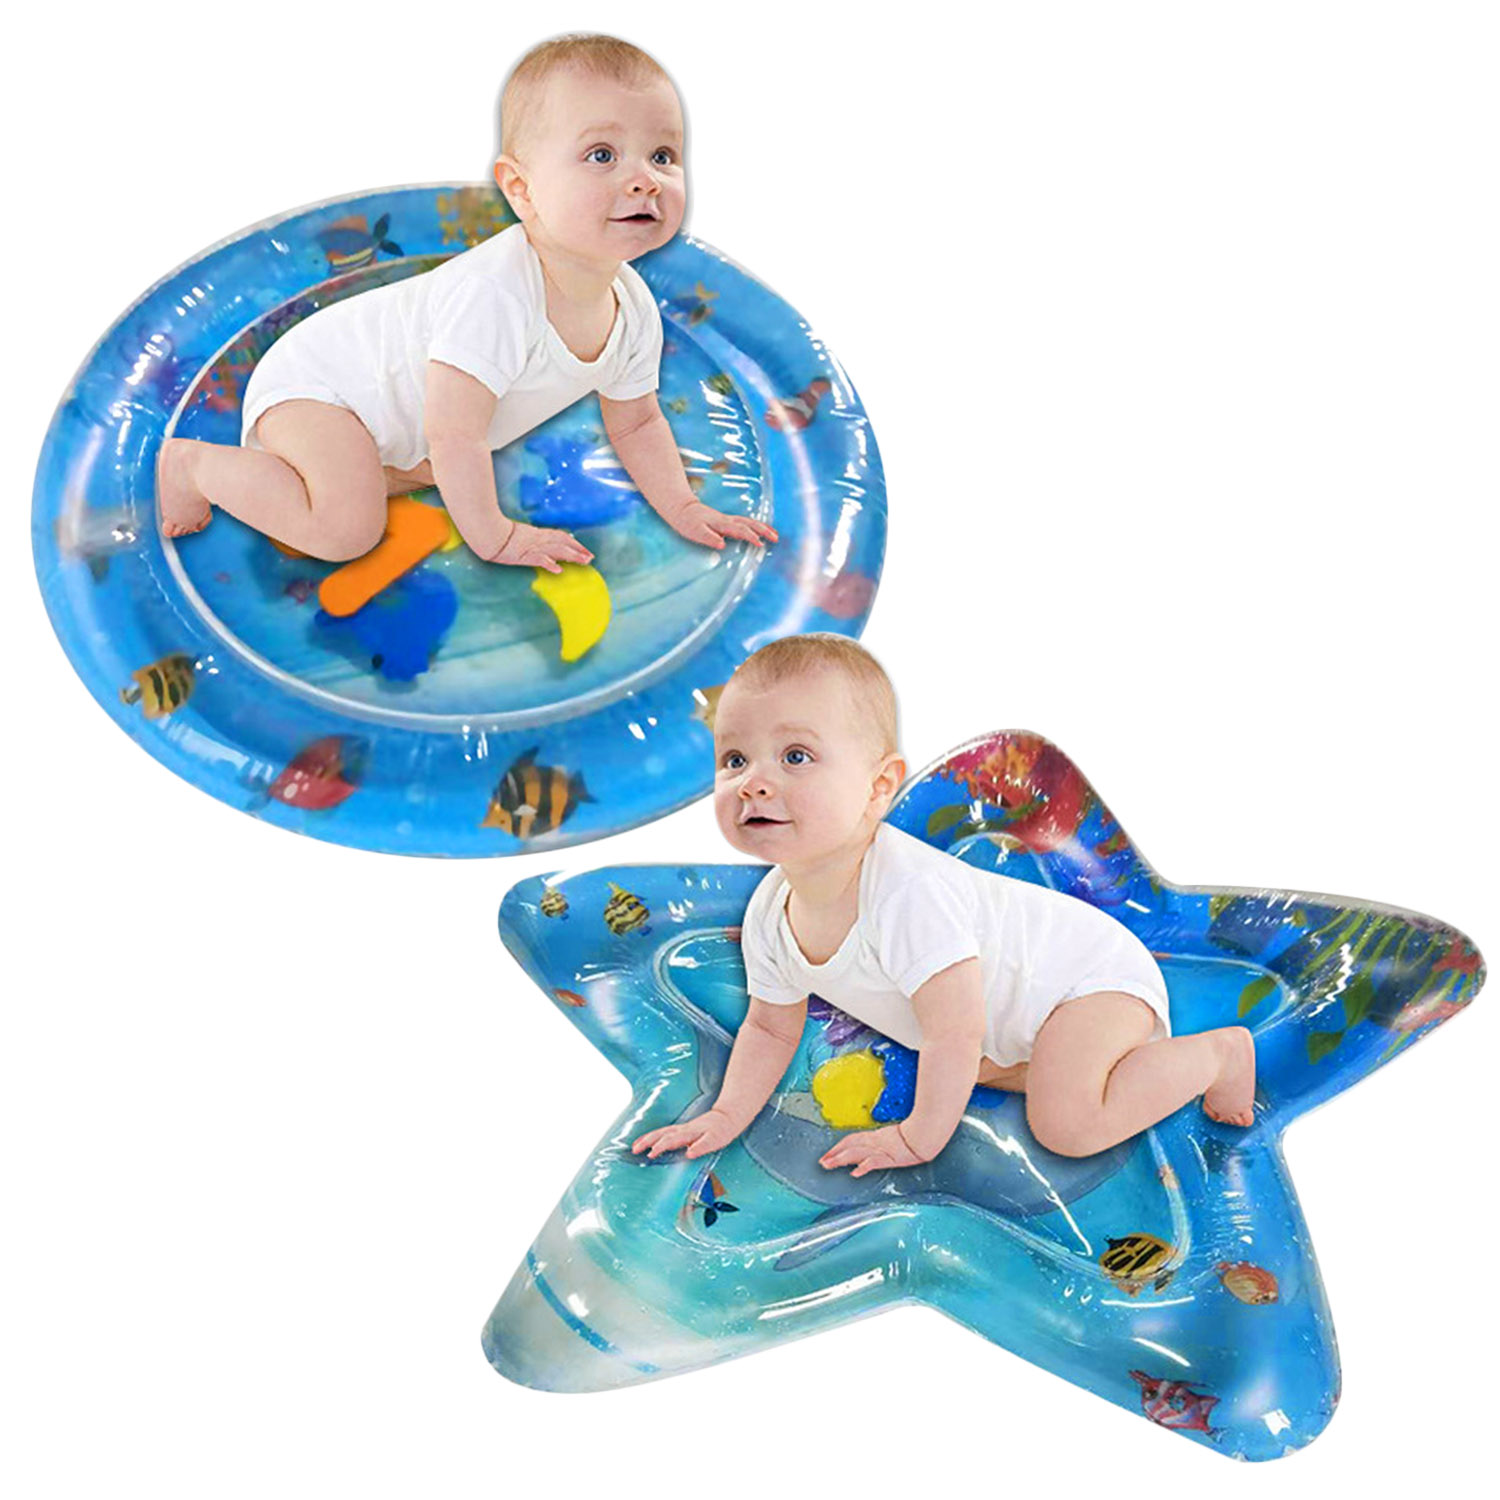 Inflatable Baby Water Cushion Mat Fun Activity Play Center For Children Infants